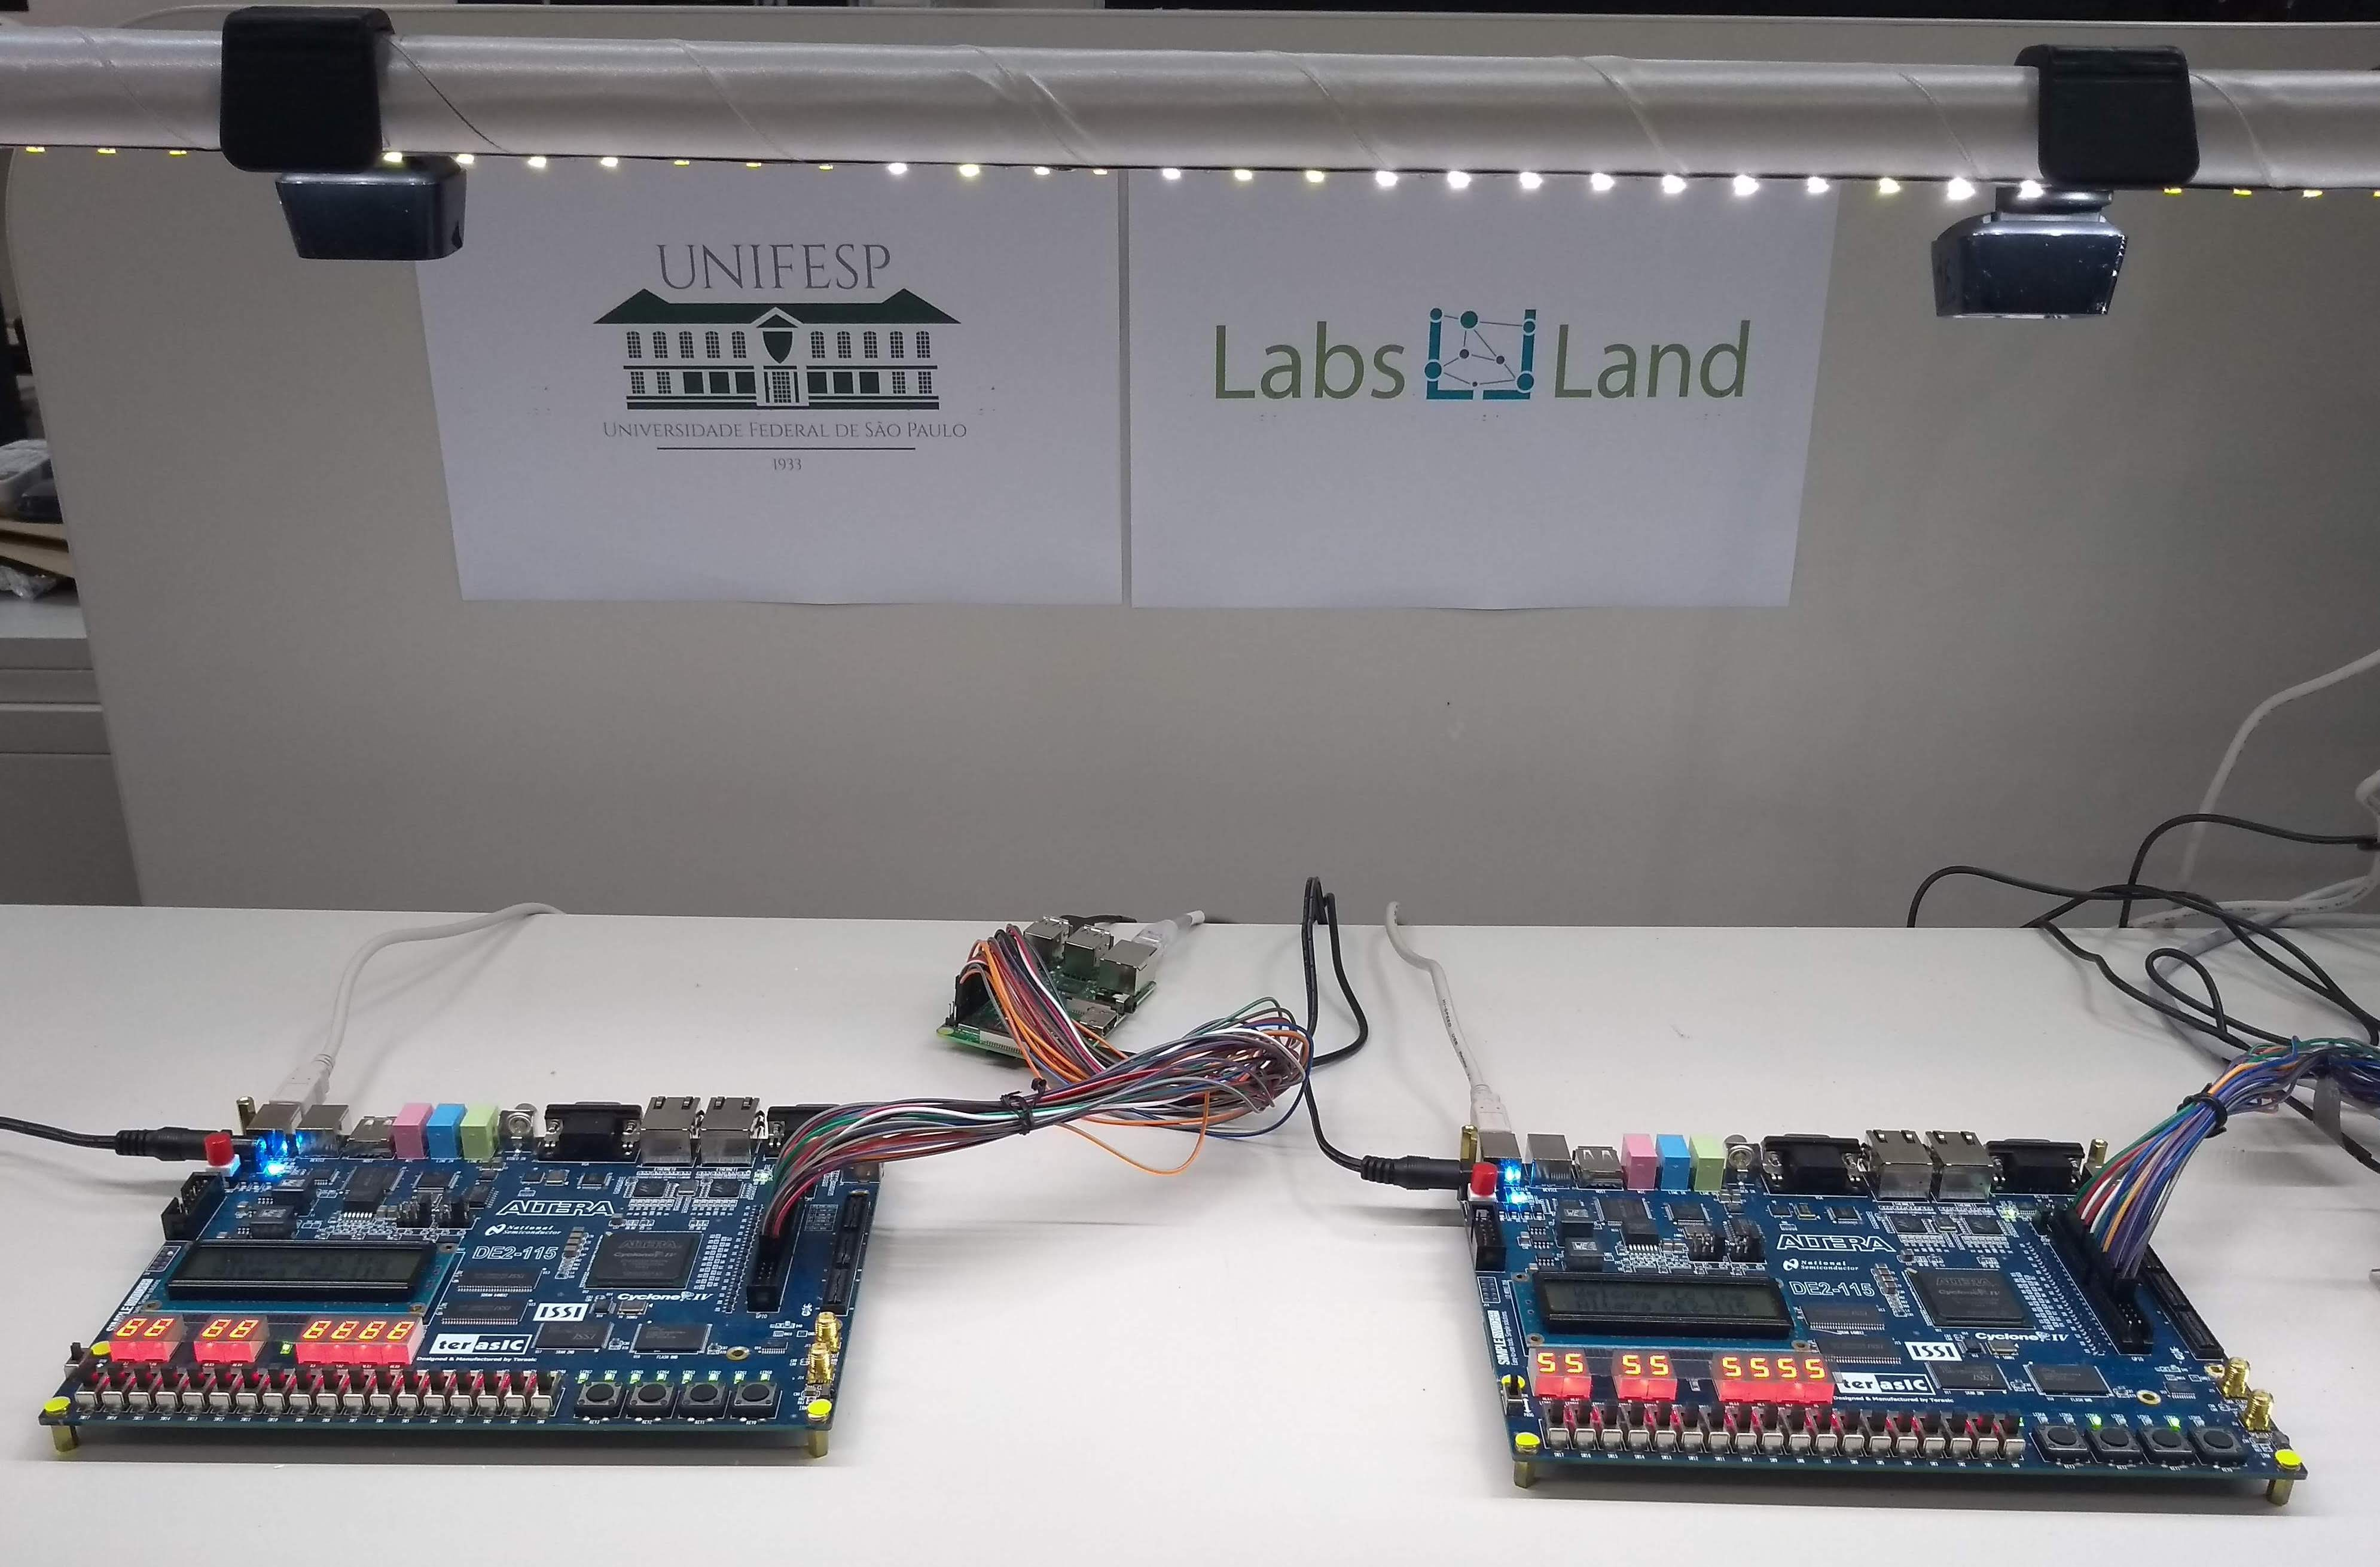 LabsLand FPGA lab instances deployment at UNIFESP (Brazil)